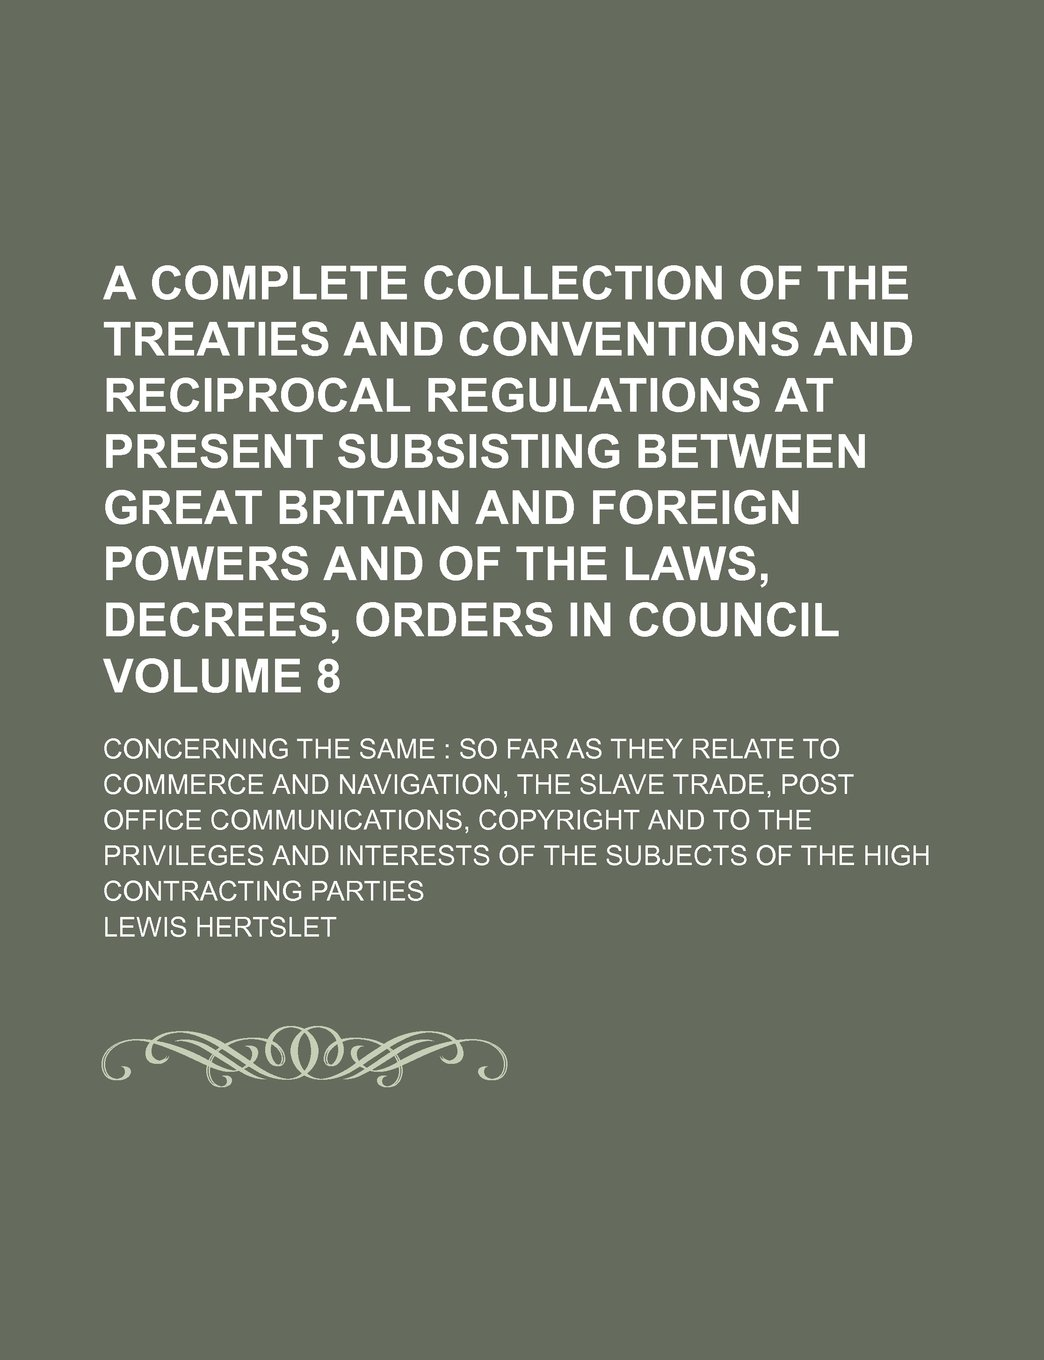 Download A complete collection of the treaties and conventions and reciprocal regulations at present subsisting between Great Britain and foreign powers and of ... concerning the same: so far as they Volume 8 PDF